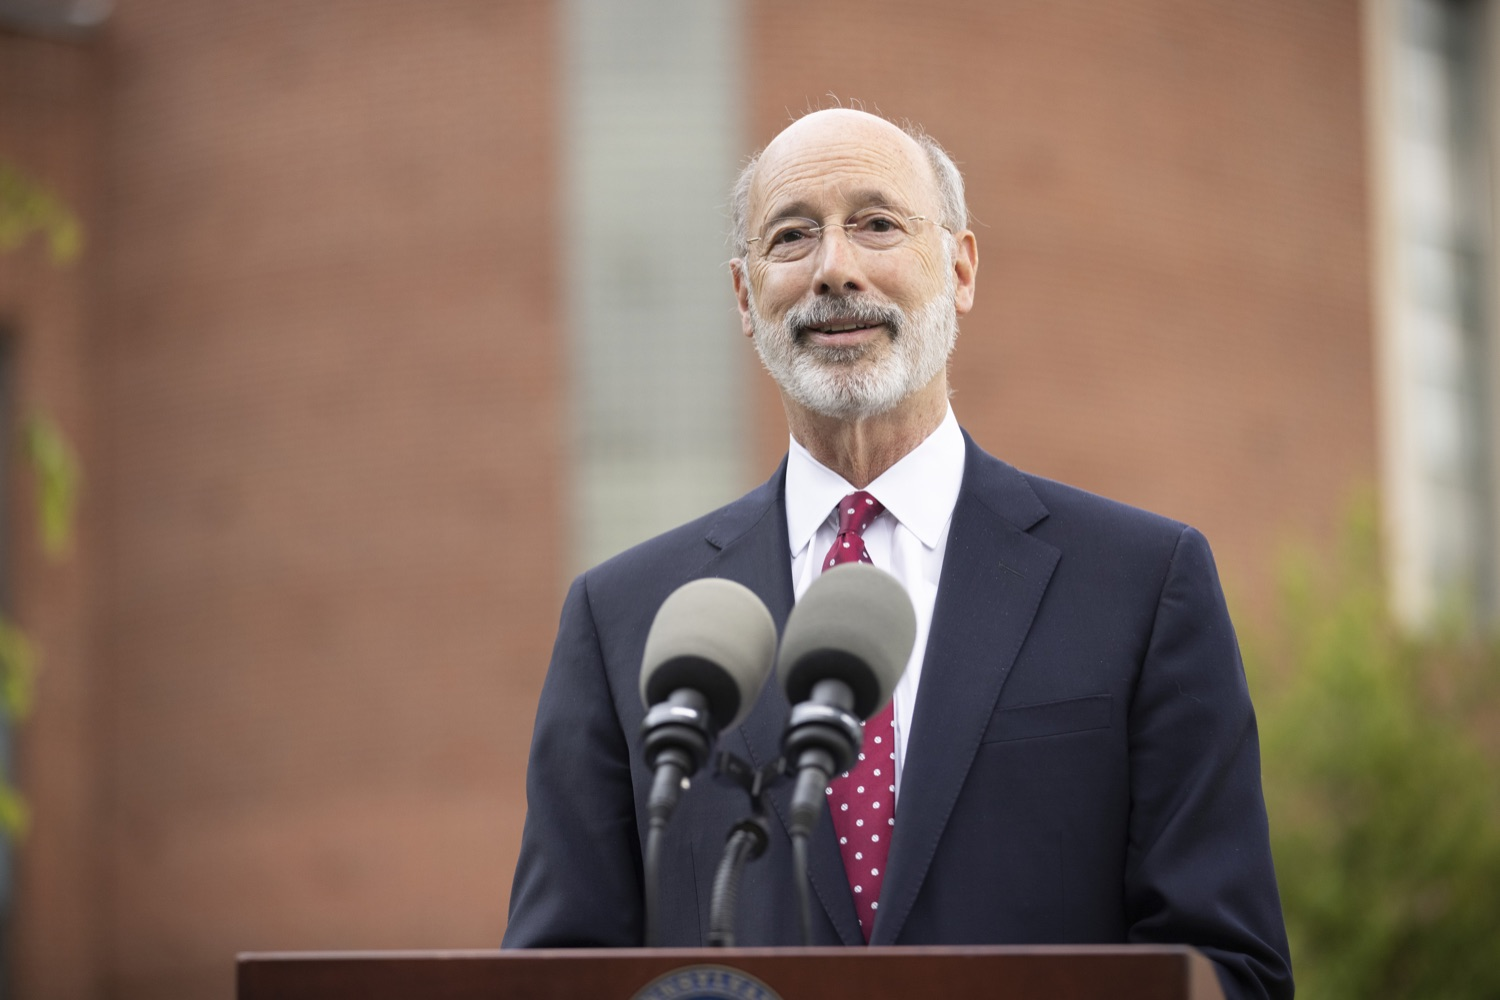 """<a href=""""https://filesource.wostreaming.net/commonwealthofpa/photo/18796_gov_charterSchool_dz_014.jpg"""" target=""""_blank"""">⇣Download Photo<br></a>Pennsylvania Governor Tom Wolf speaking with the press.  With overwhelming support among school districts for his charter school accountability plan, Governor Tom Wolf visited J.P. McCaskey High School in Lancaster today to discuss his bipartisan proposal that saves an estimated $395 million a year. Lancaster, PA  June 01, 2021"""